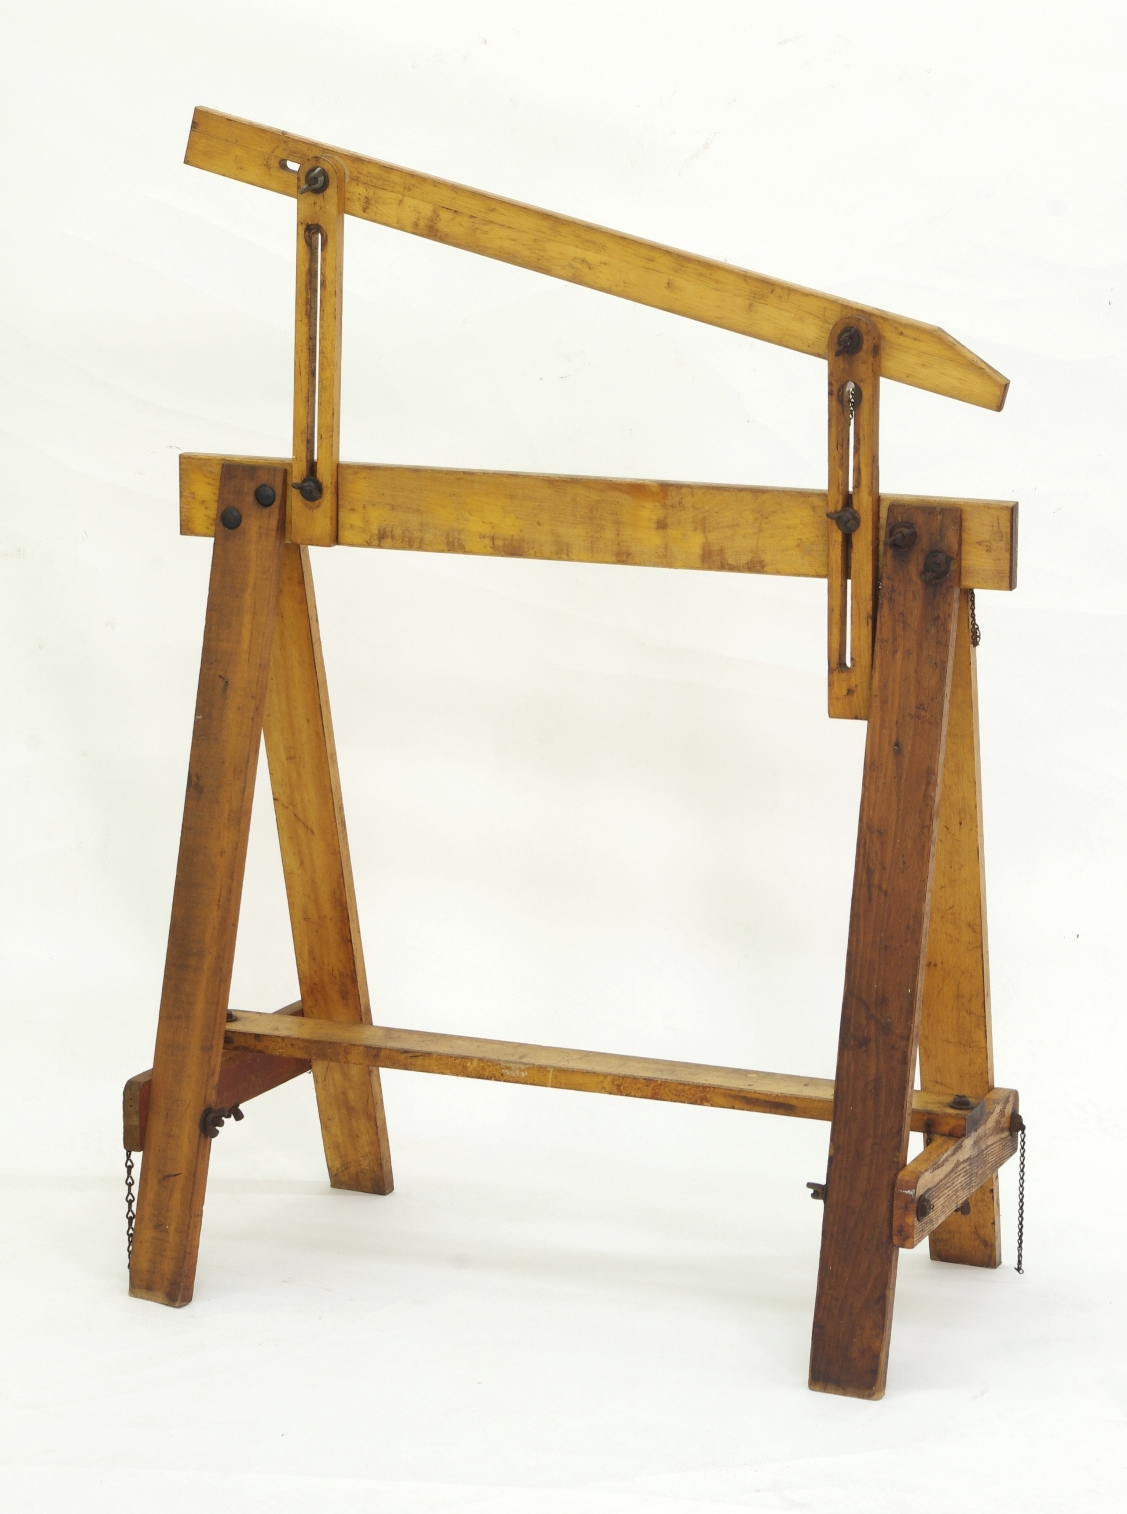 View 8: Pair of Adjustable Sawhorses c. 1920